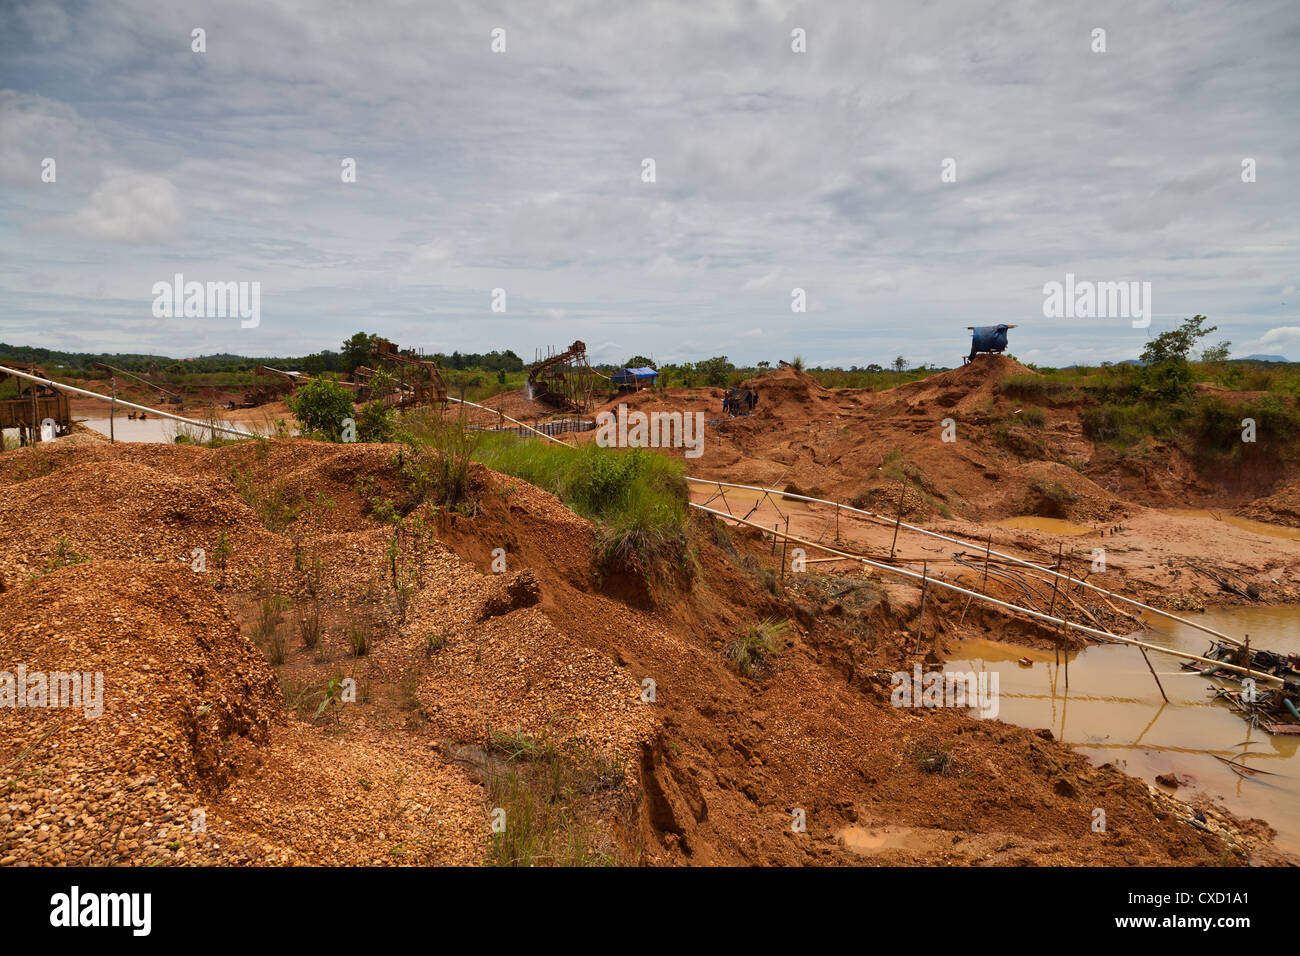 View over the Diamond Fields of Cempaka in South Kalimantan in Indonesia - Stock Image